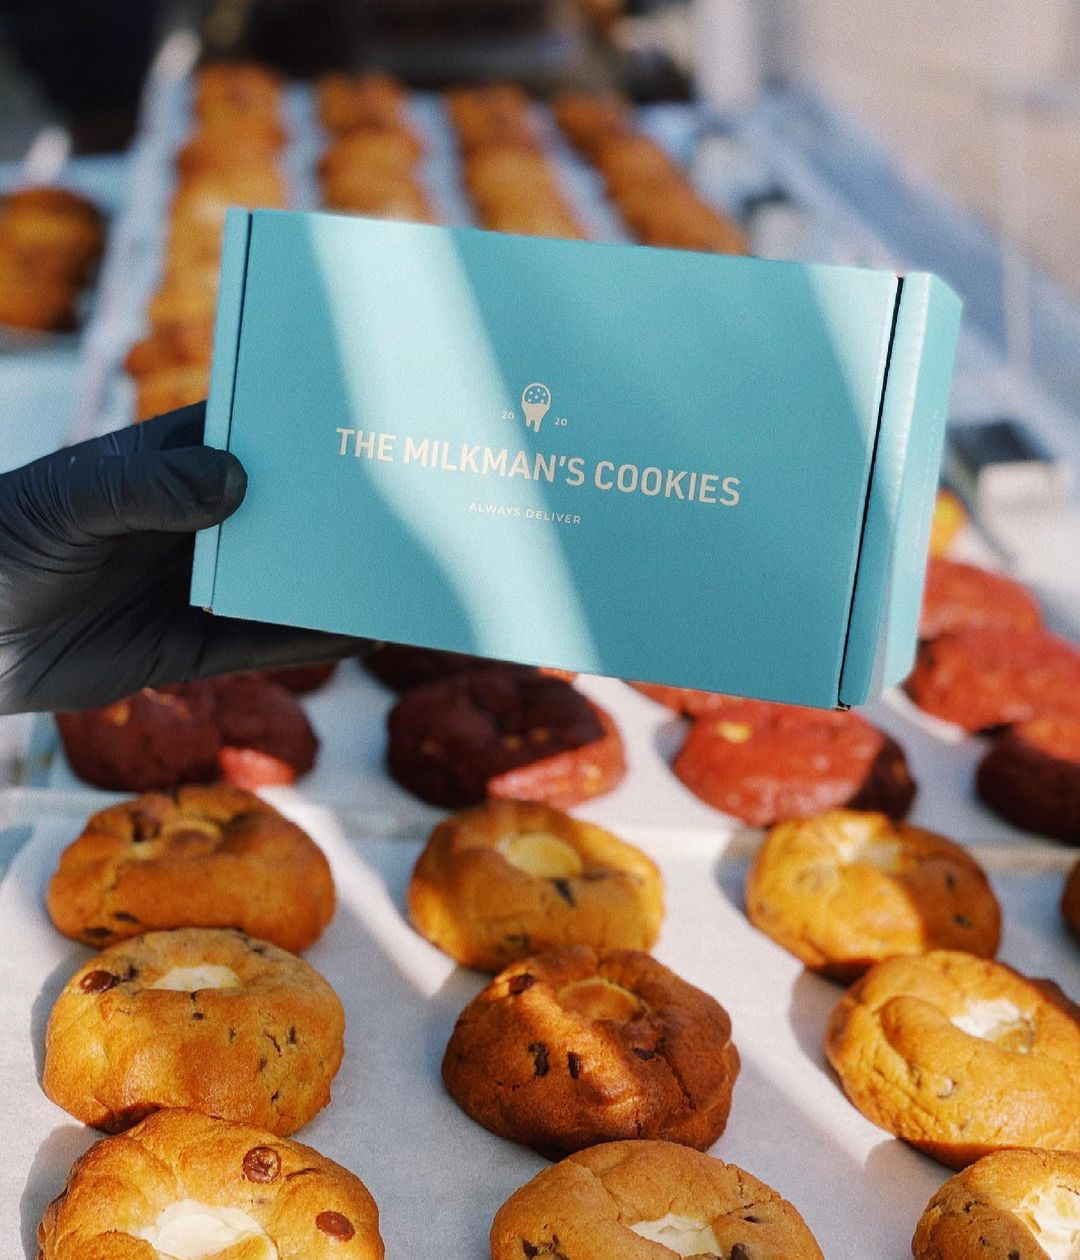 a turquoise box against a backdrop of cookies